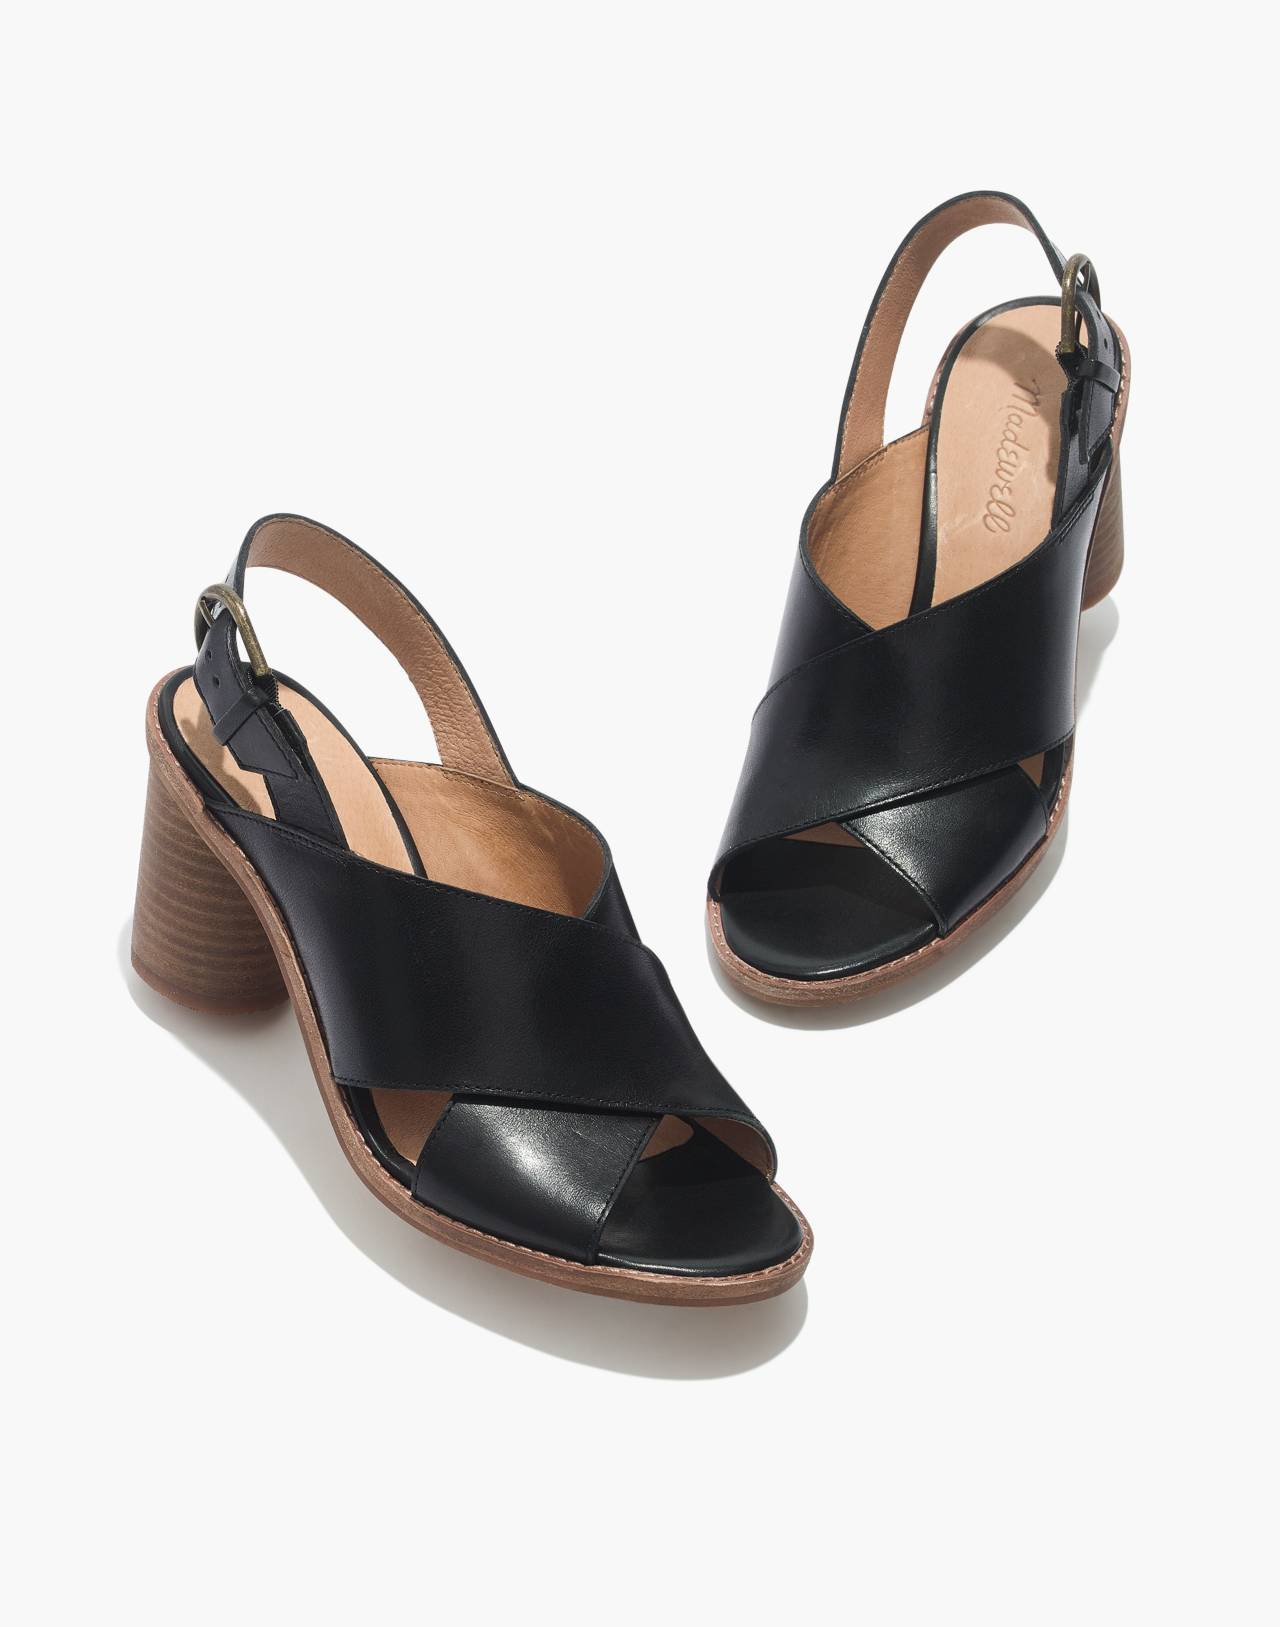 The Ruthie Crisscross Sandal in Leather in true black image 1